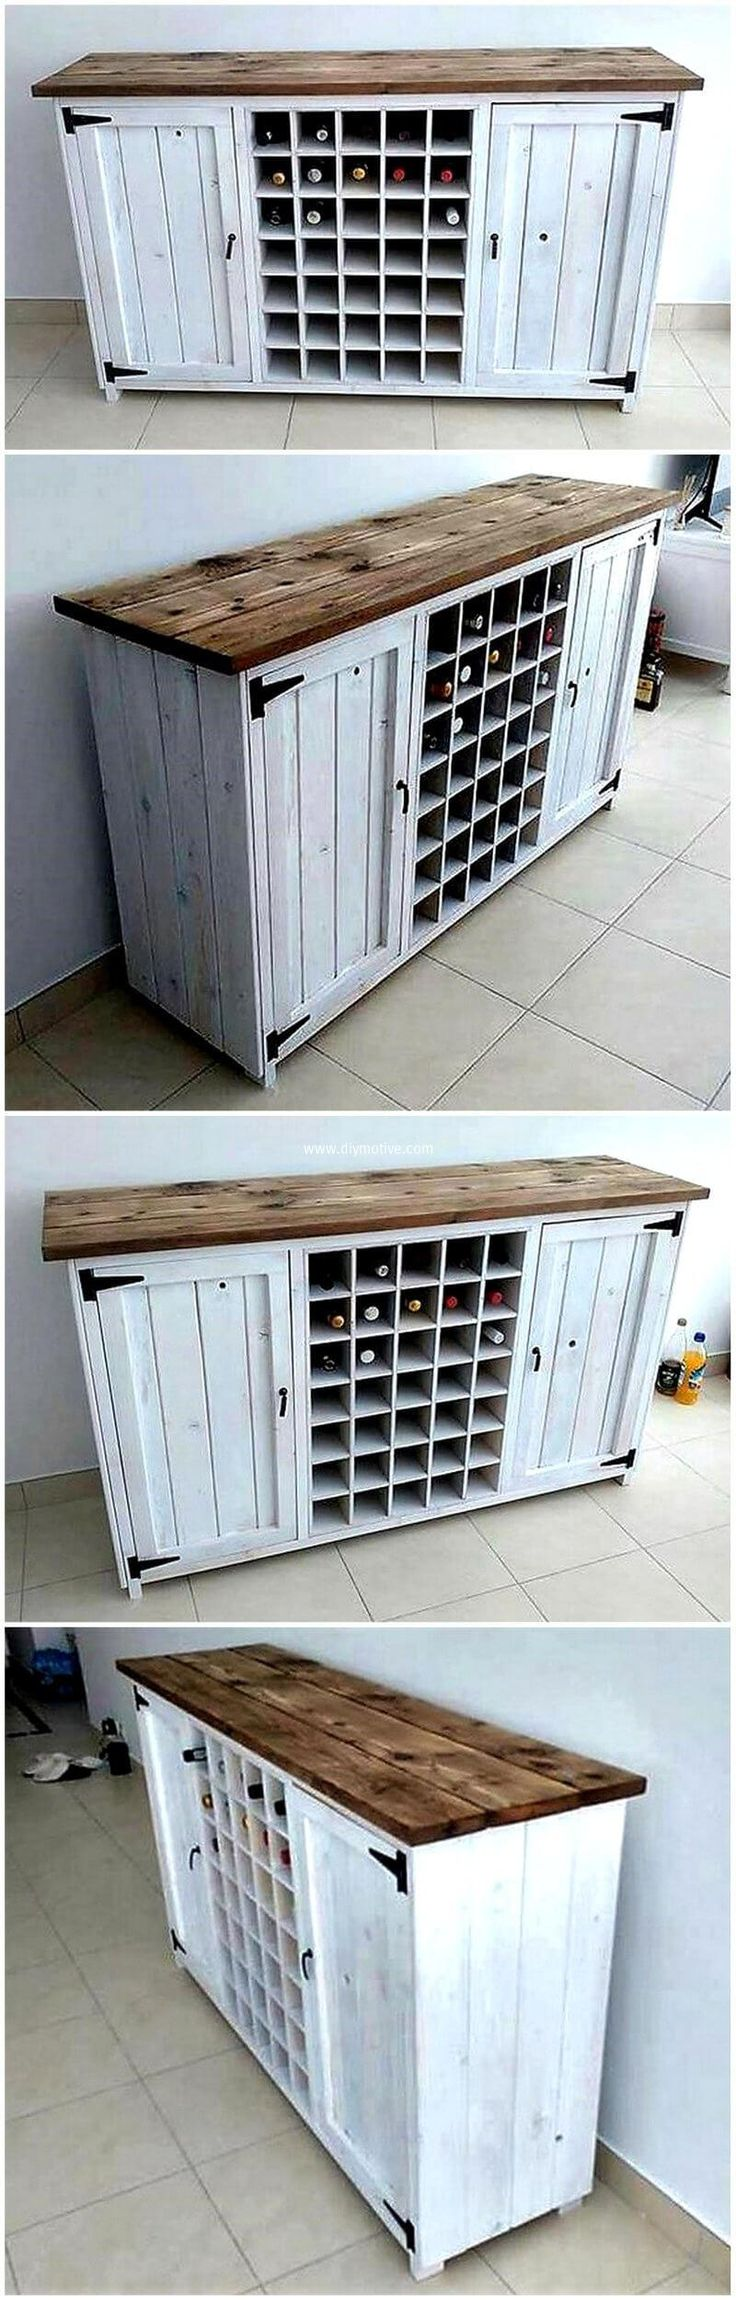 The whole area gets transformed into an attractive and classy look due to the presence of such decent artworks as this wood pallet table. This type of furniture enhances the natural beauty outside your home by its looks. Mini cubes seems to be helpful for holding dozen of bottles in it. Pallet entryway table project is interesting as well important. Do try this project.